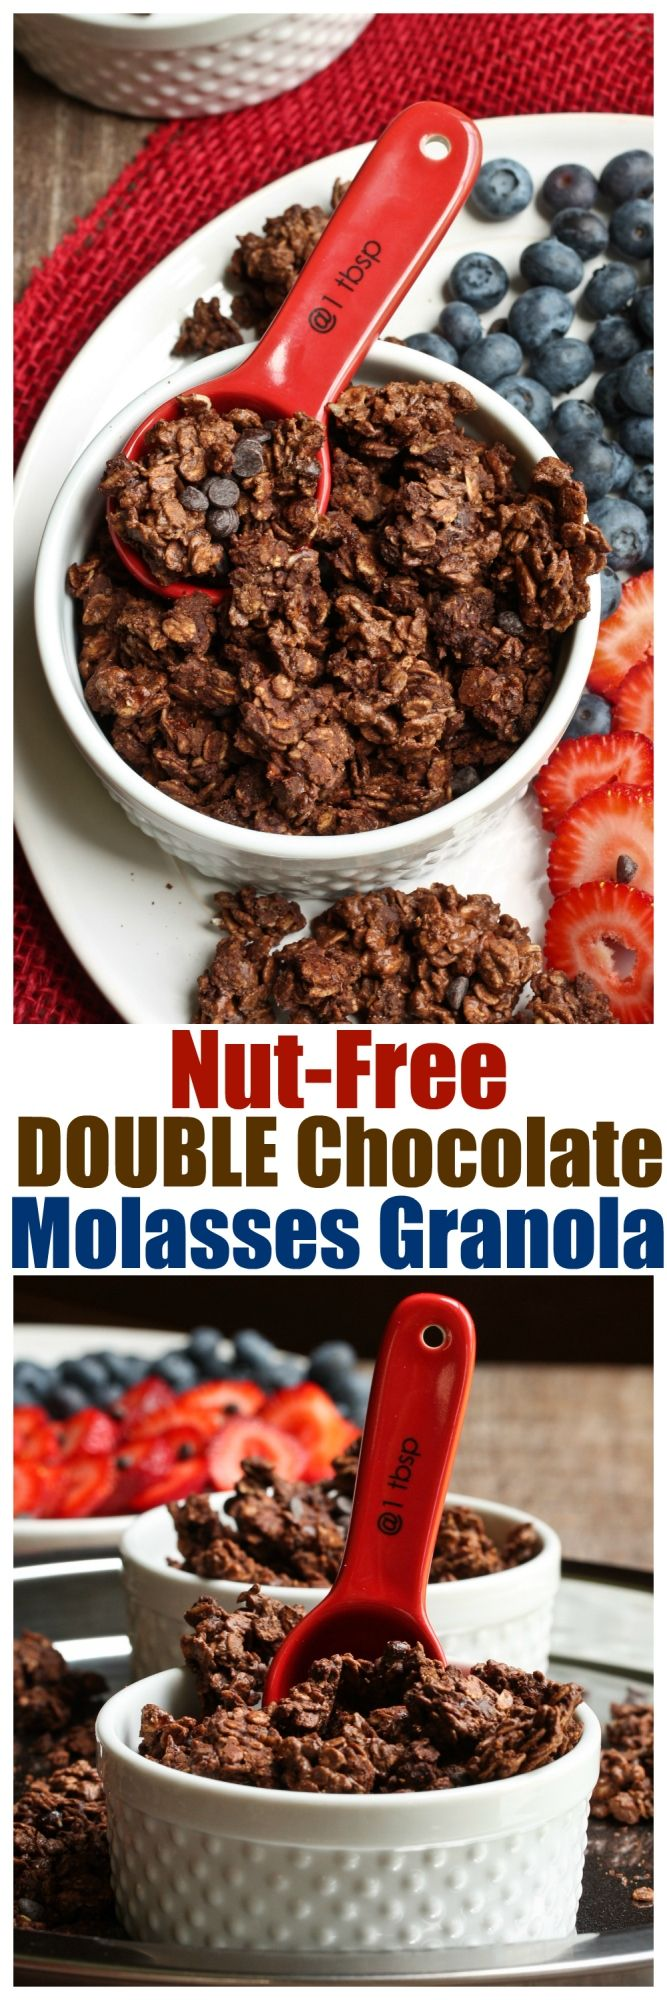 So, so, so chocolatey. That is what I kept saying while eating this. This granola has such an incredible, true chocolate flavor. That's all you will think about while eating this. The blackstrap molasses may seem like an odd addition, but I like to add it to my chocolate recipes sometimes because it further enriches the chocolate flavor. I love